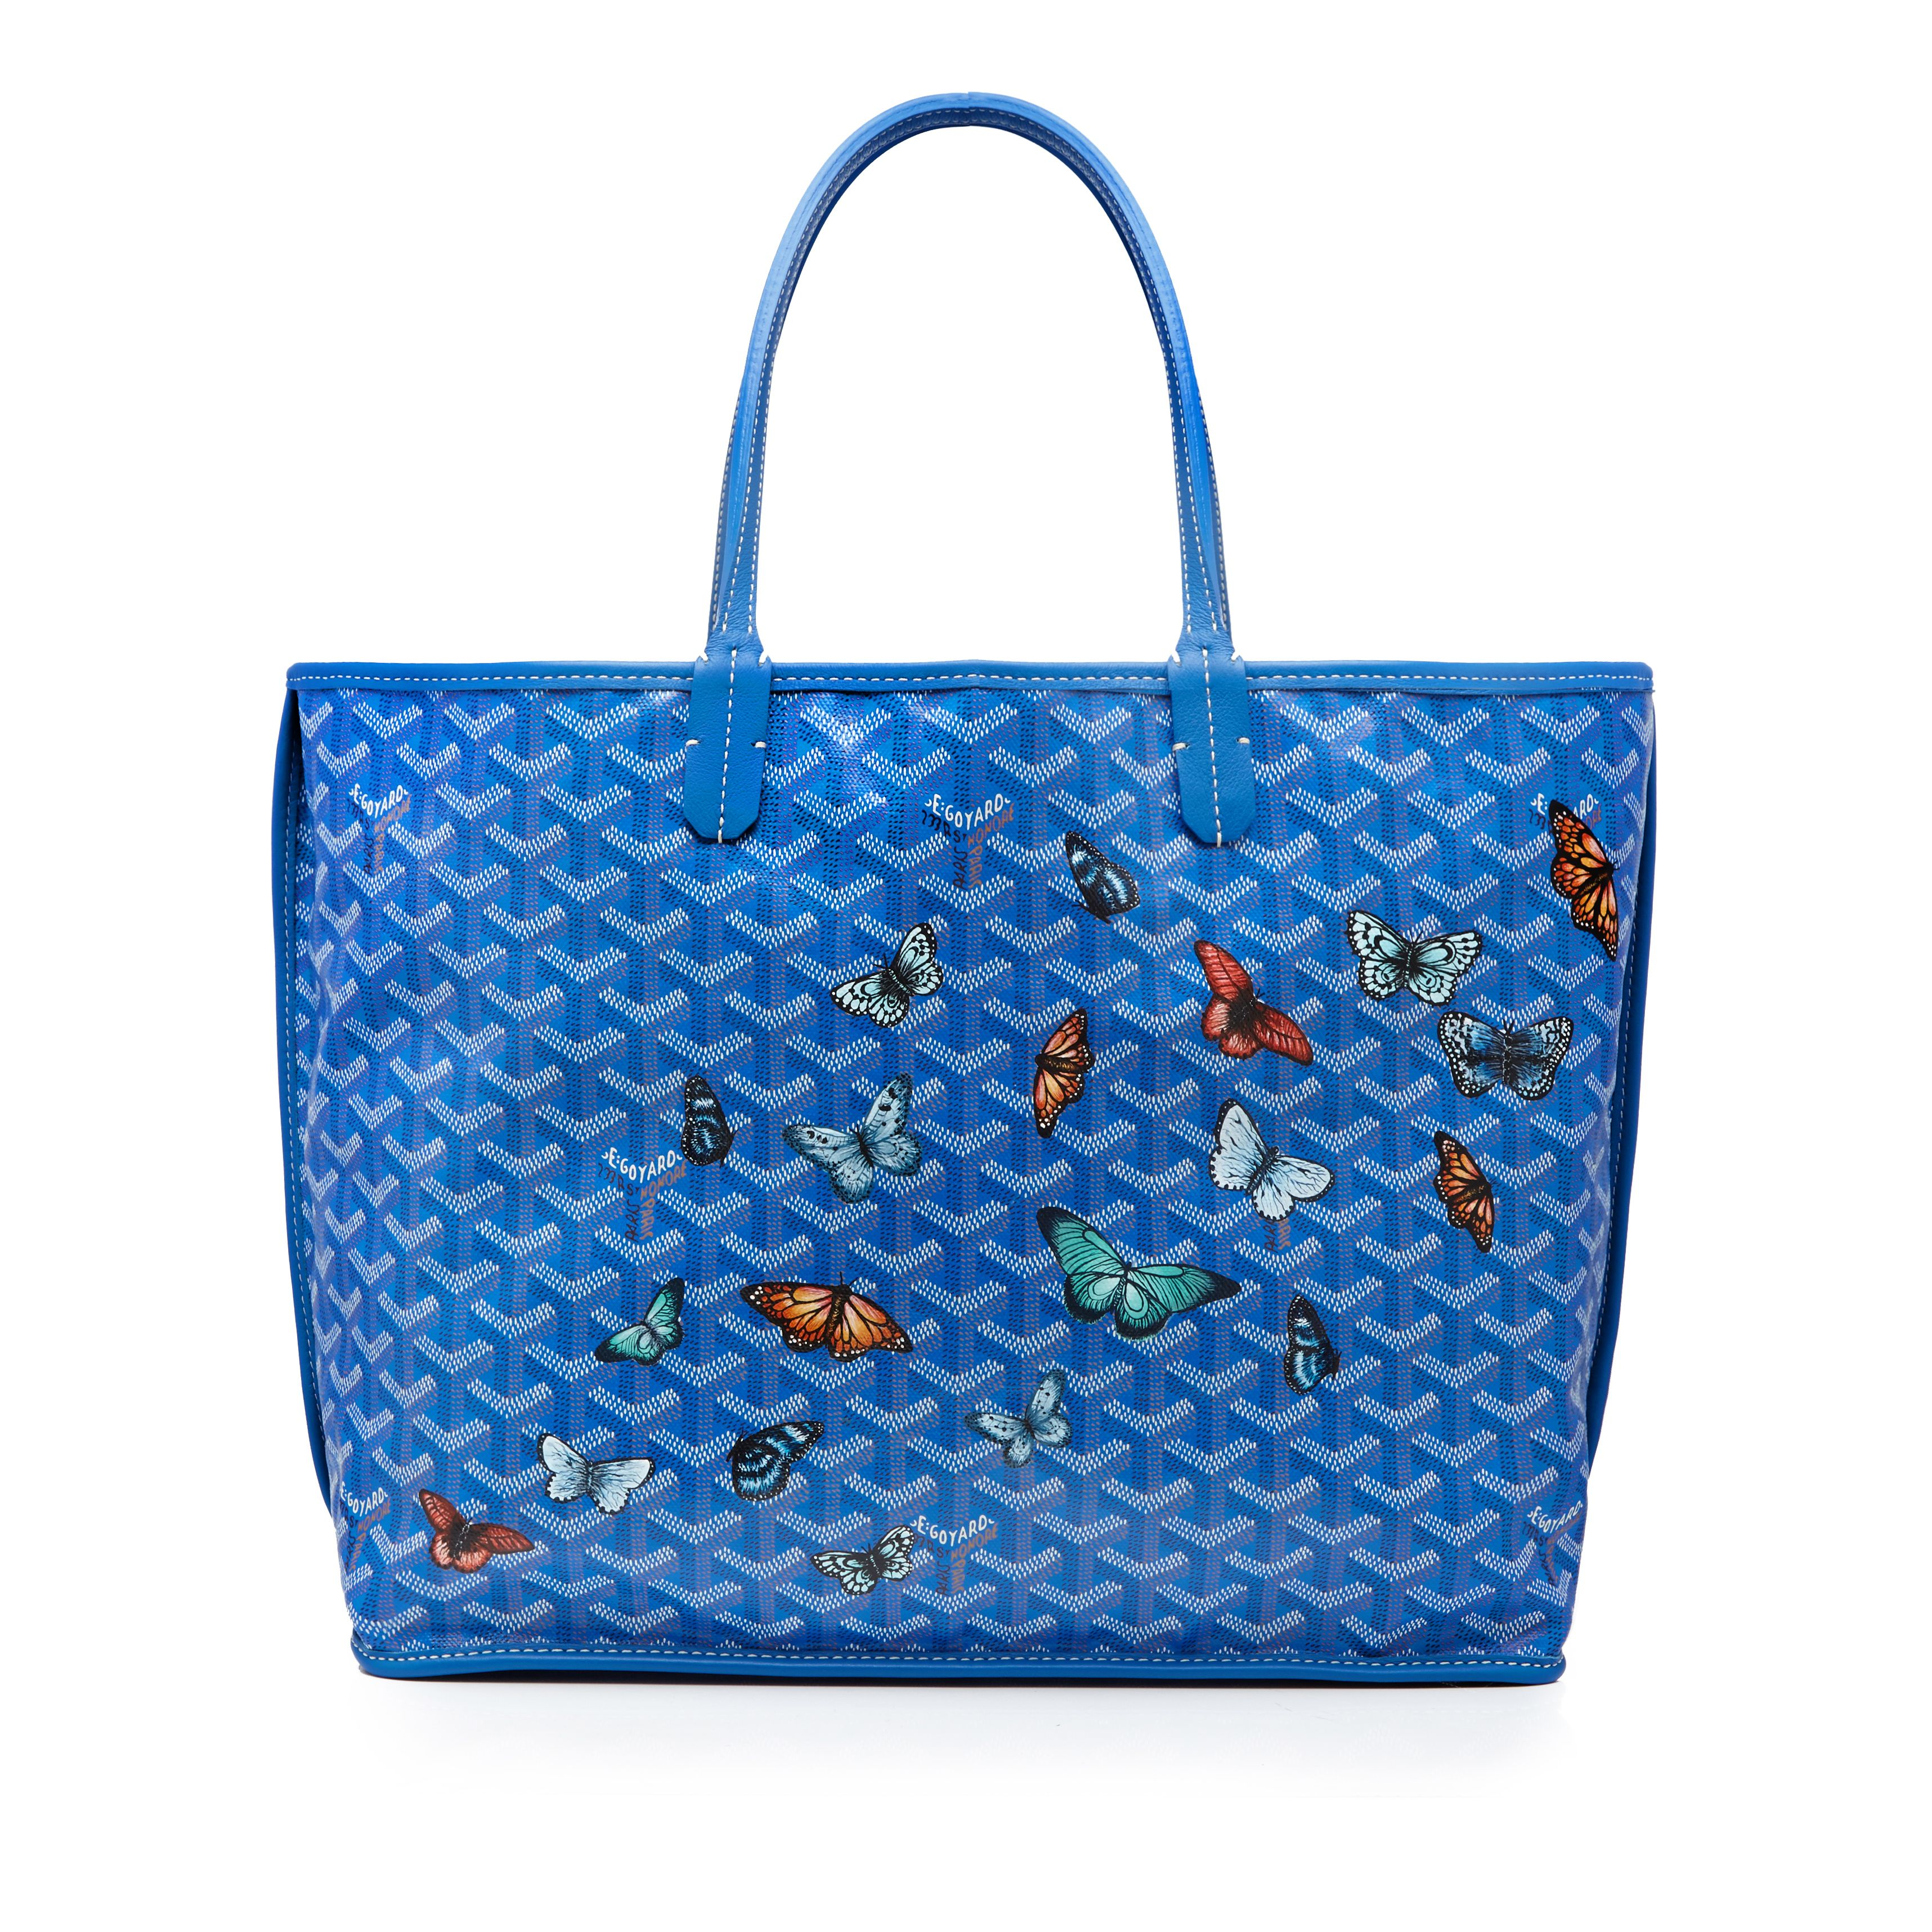 Butterflies Customised Bag Custom Bags Goyard Bag Bags